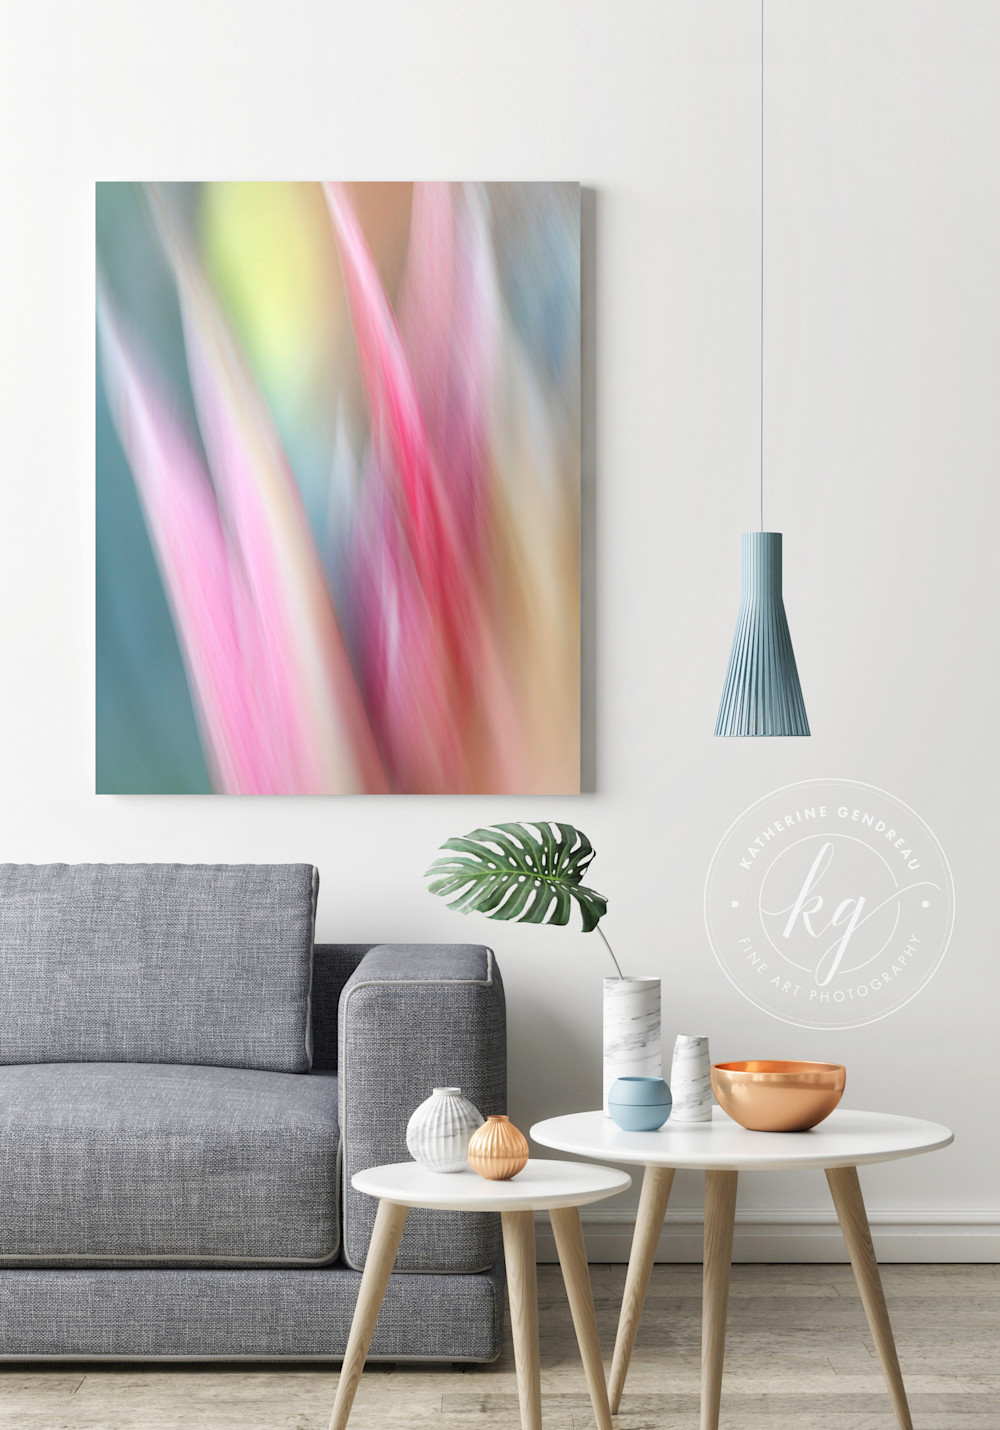 abstract bird of paradise flower photography, colorful vibrant bold vertical modern abstract wall art, botanical garden artwork, succulent plant photos